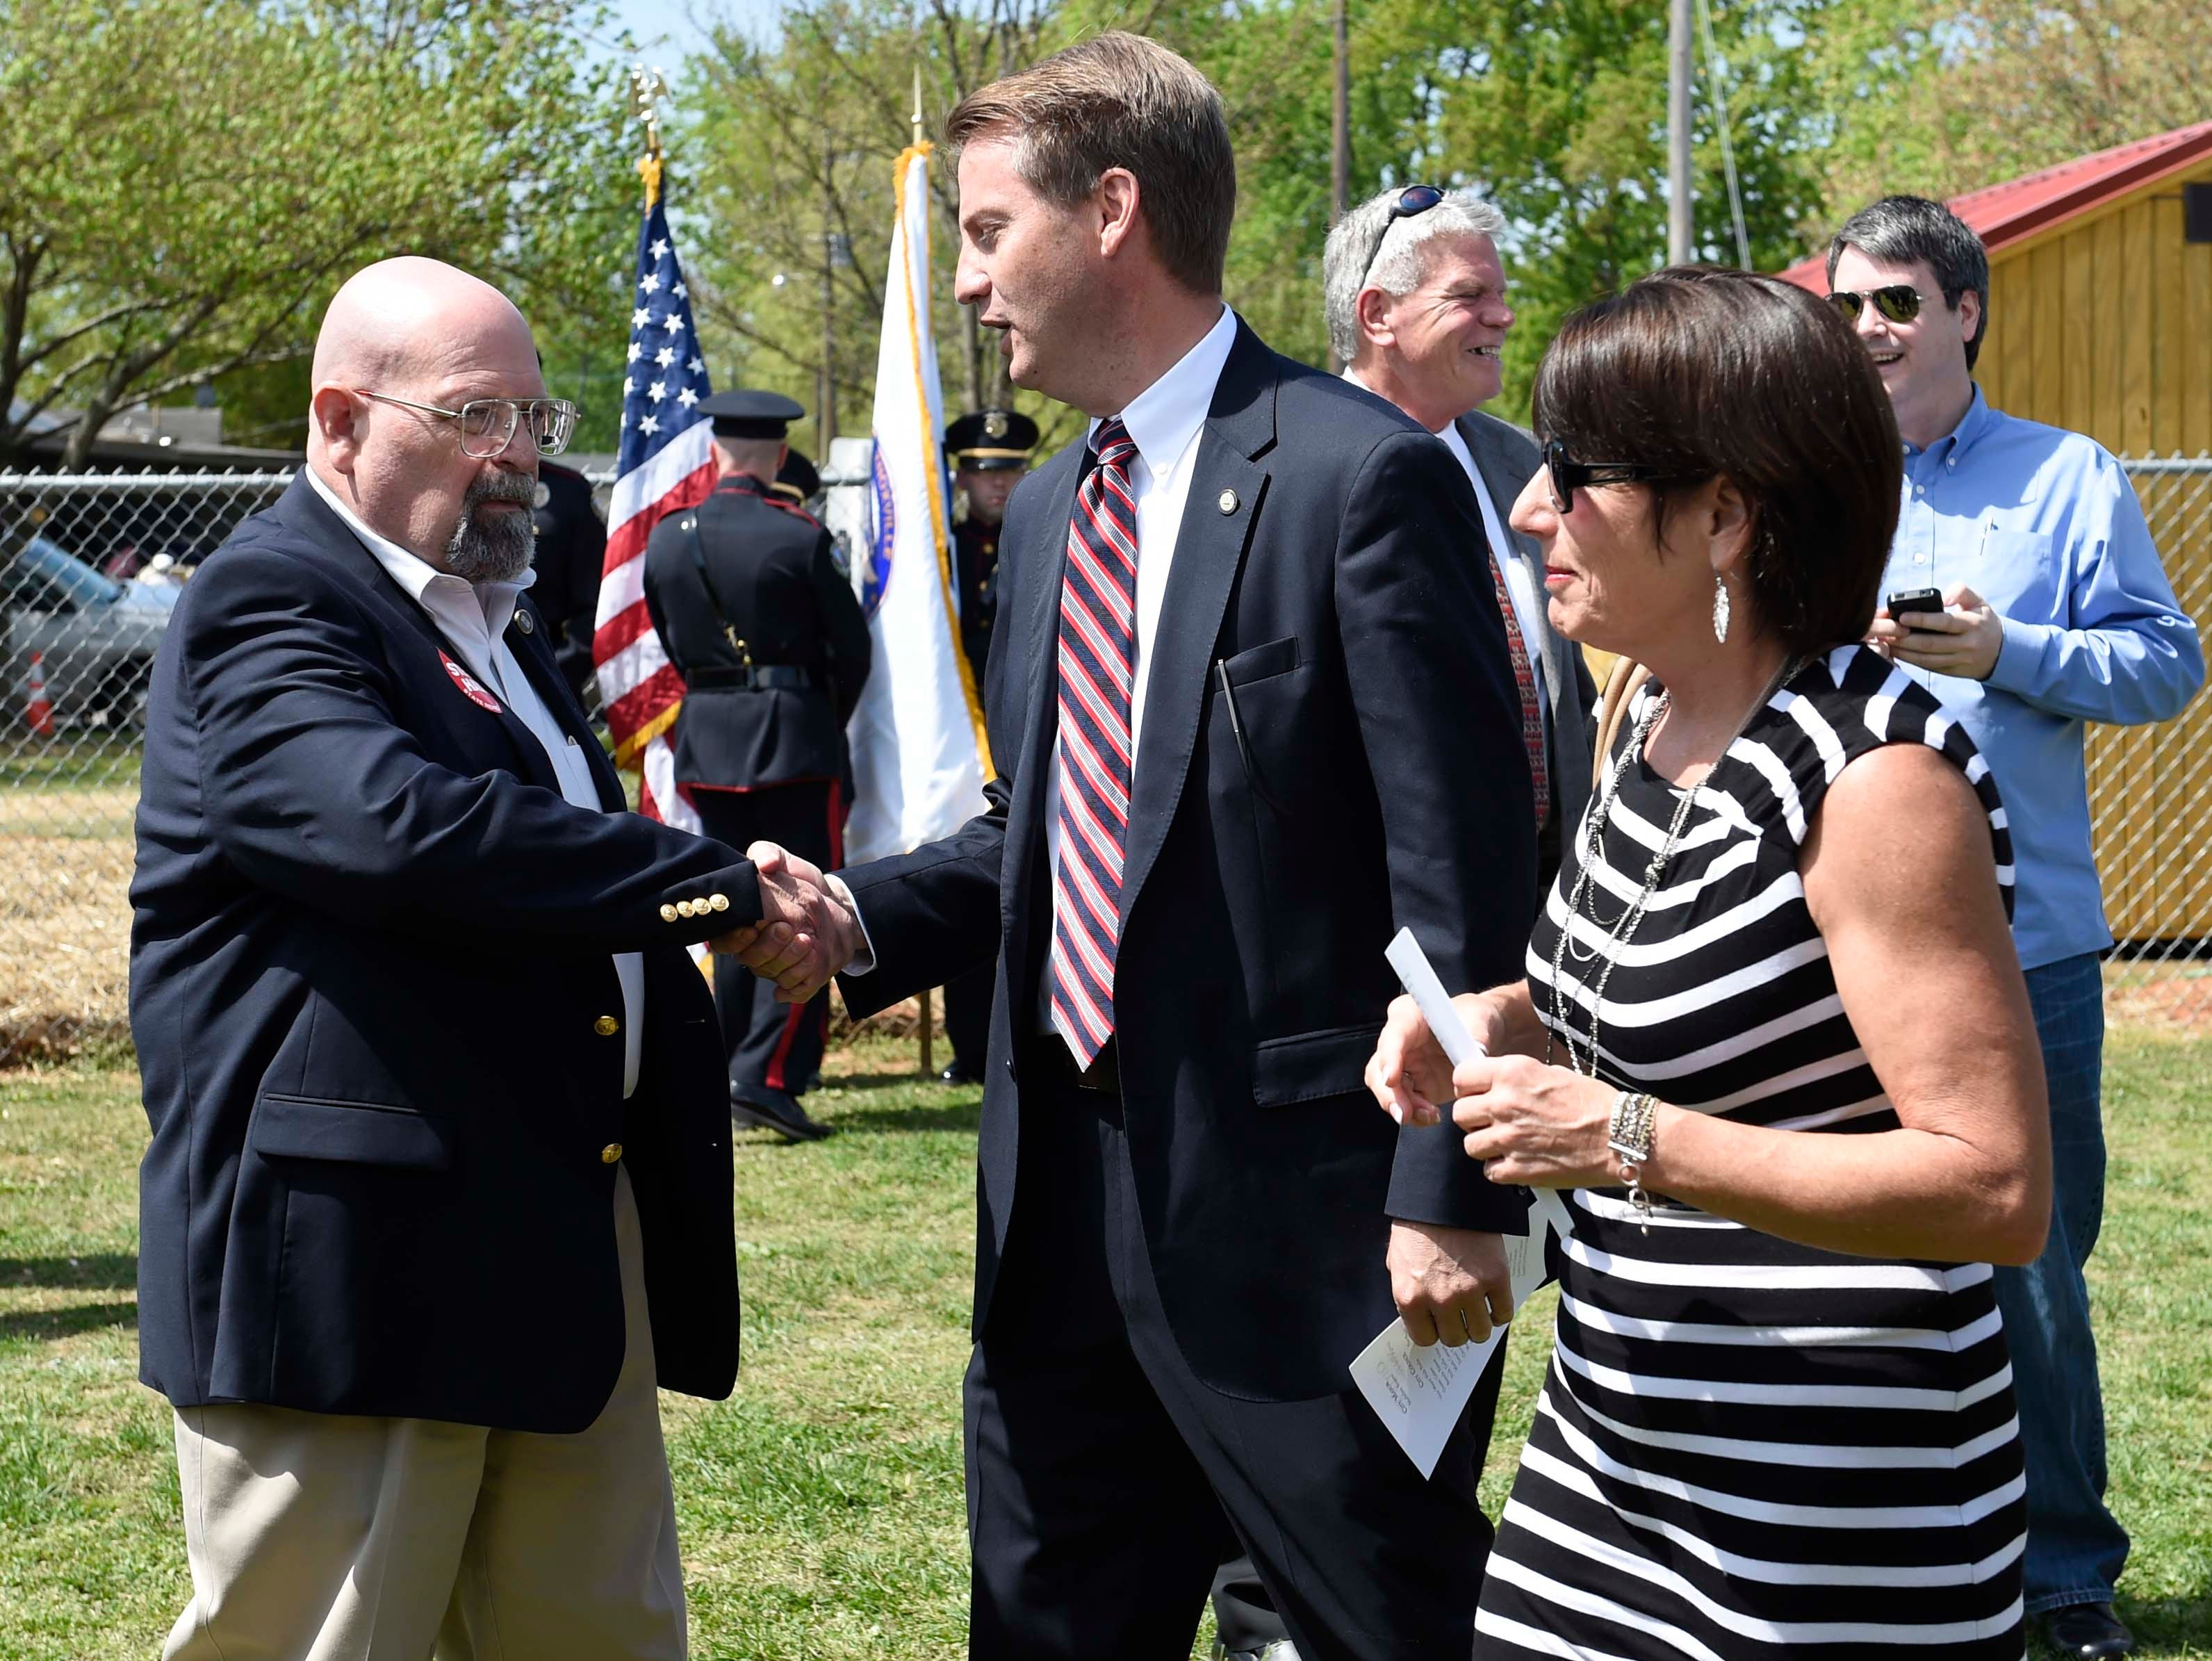 Rep. Steve Hall greets Knox County mayor Tim Burchett and Carol Evans with Legacy Parks Foundation before the City of Knoxville 2014 budget address at Christenberry Ball Park, Thursday, April 24, 2014. The mayor proposed a 34 cent property tax increase as part of the new budget.